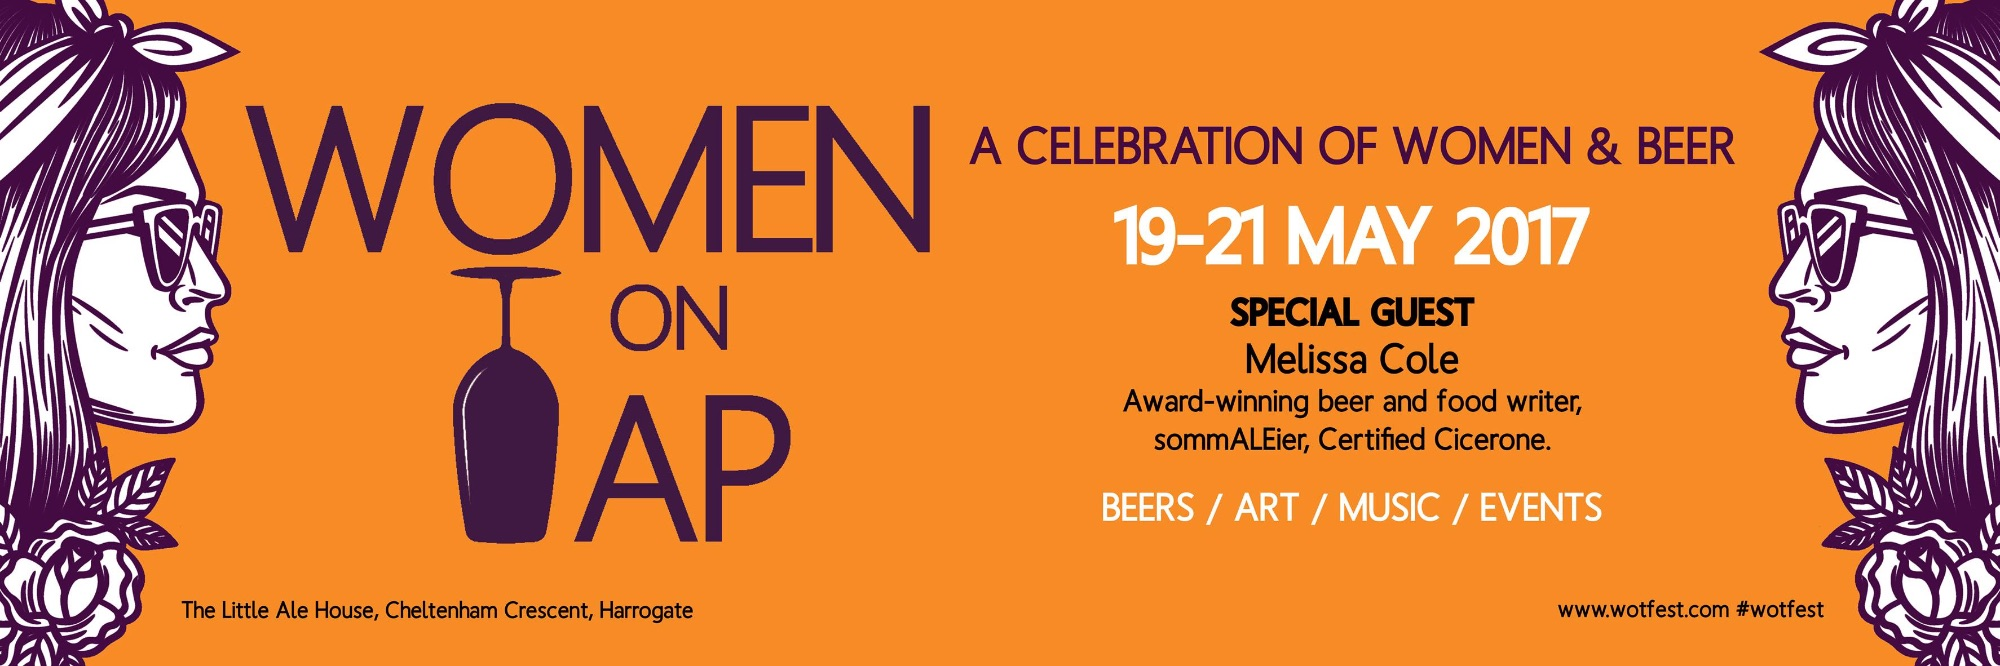 Women on Tap Exhibition